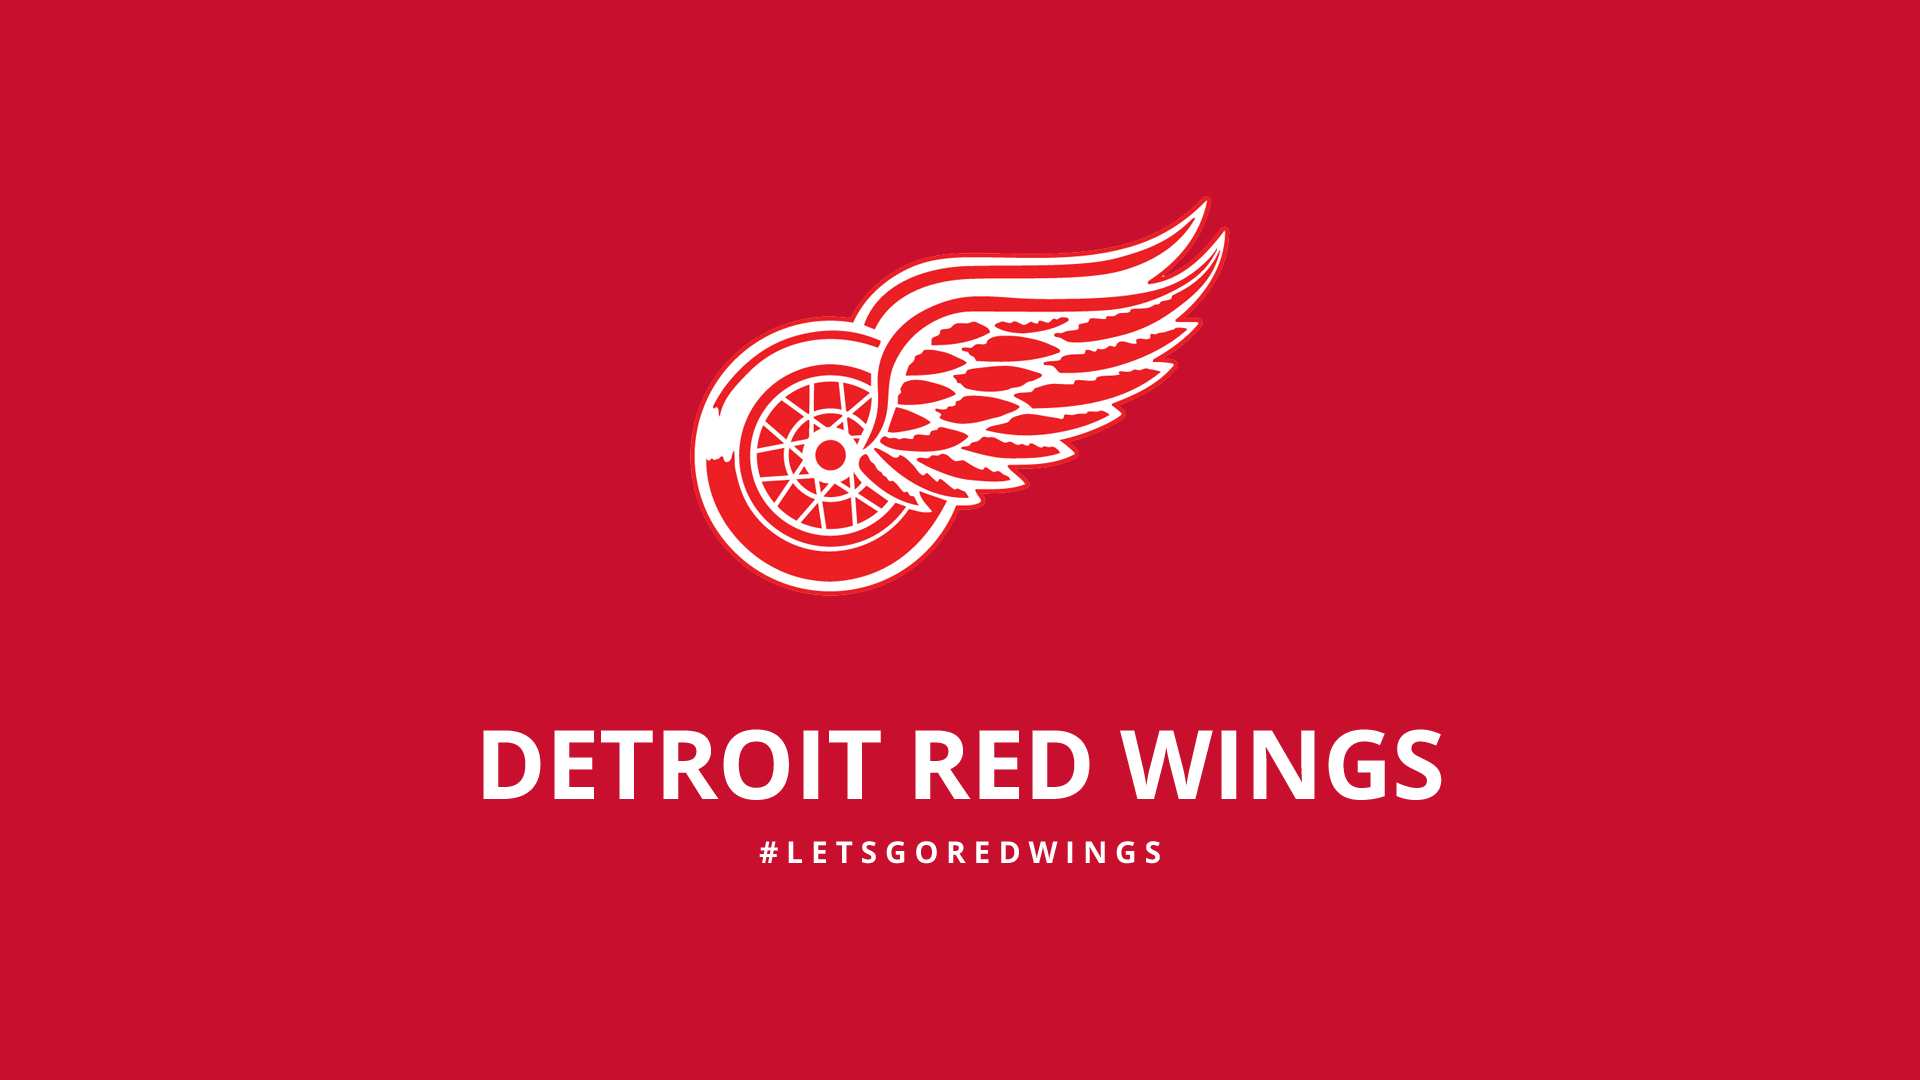 Minimalist Detroit Red Wings wallpaper by lfiore 1920x1080